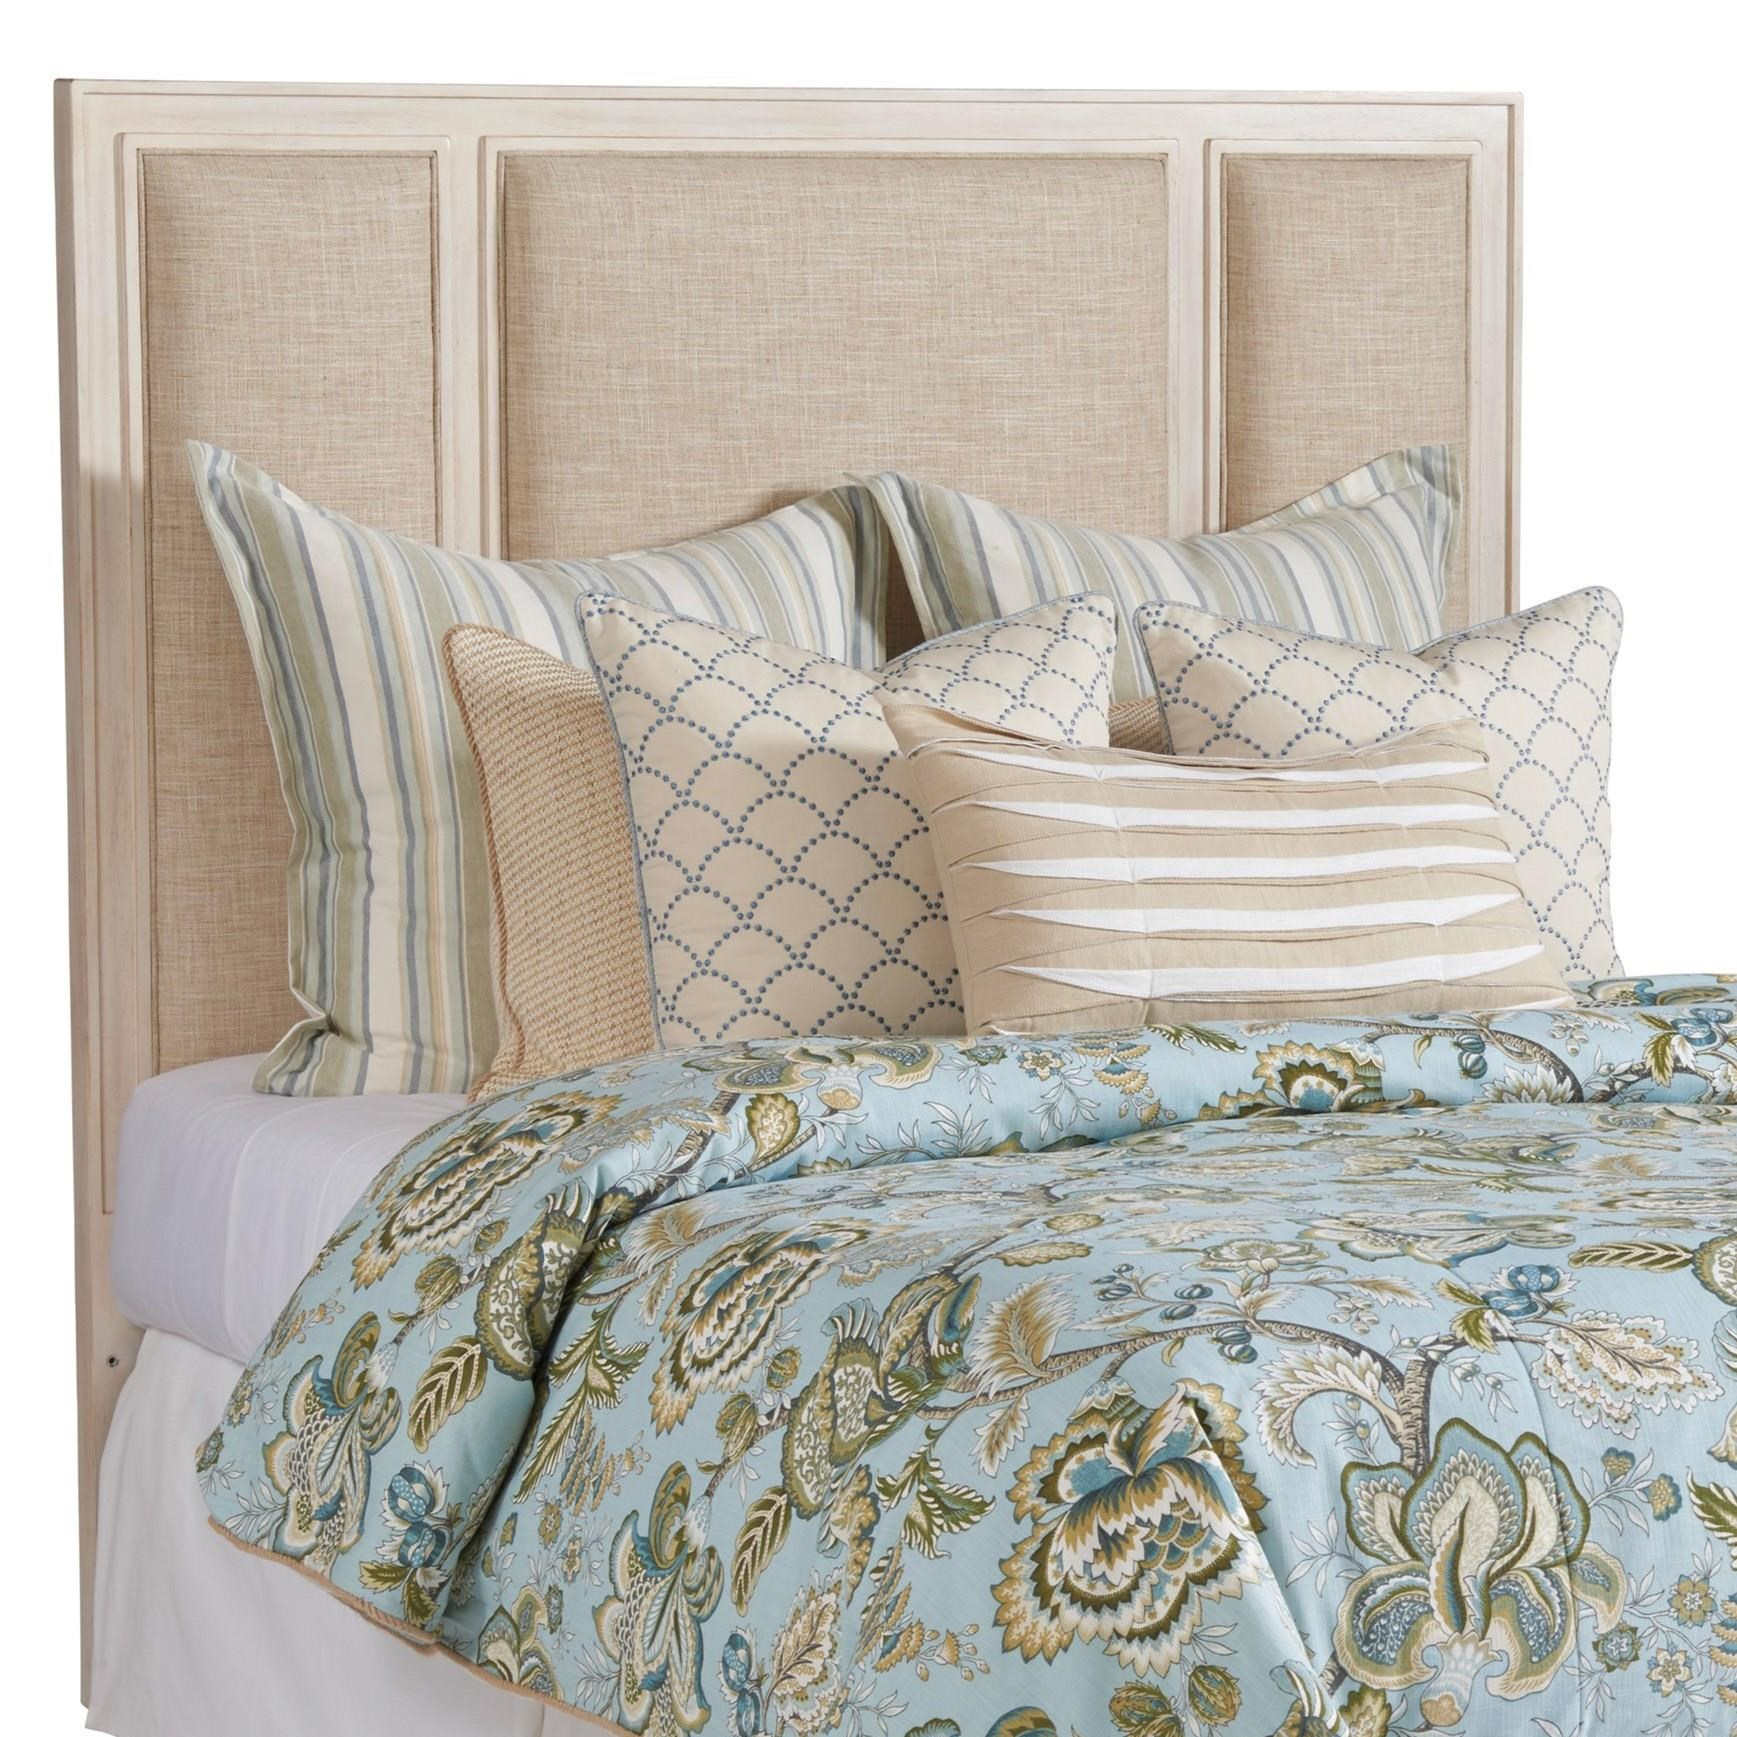 Newport Crystal Cove Upholstered Panel Hbd  6/6 by Barclay Butera at Baer's Furniture